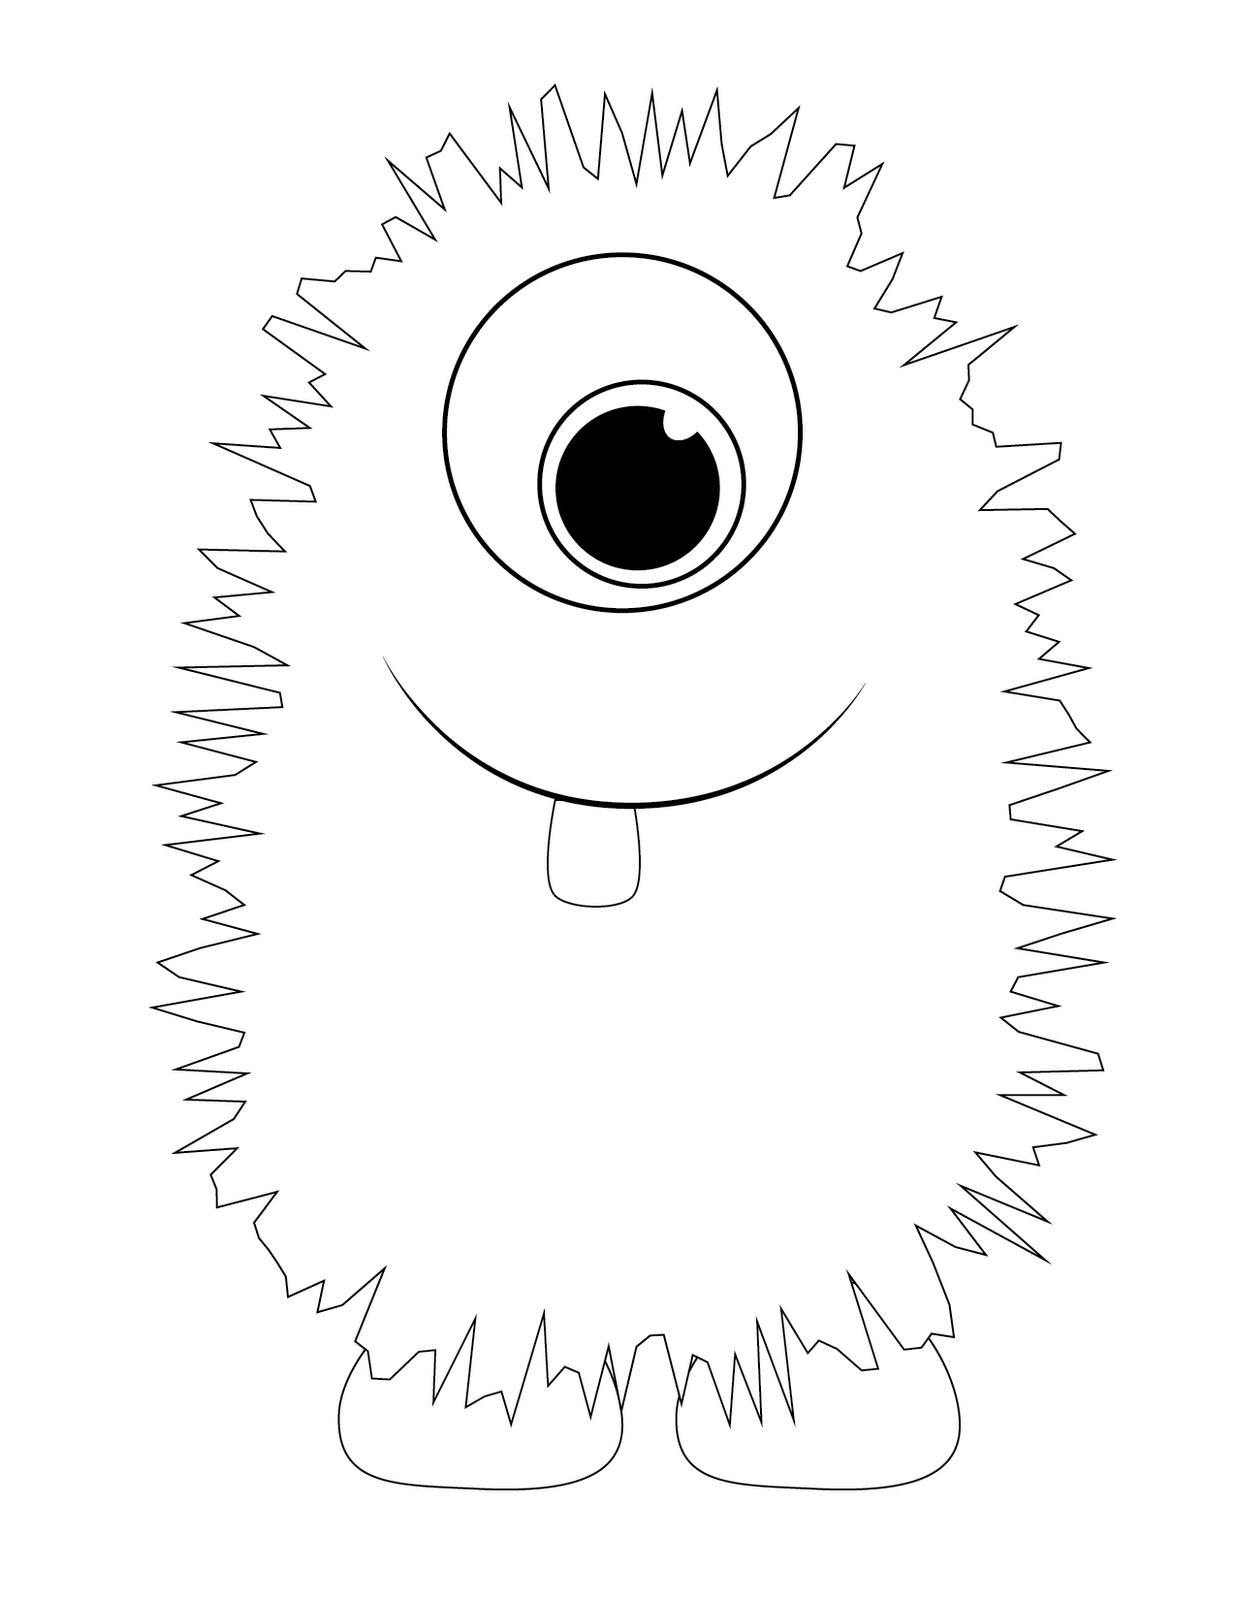 Coloring Page  Monster coloring pages, Monster crafts, Monster